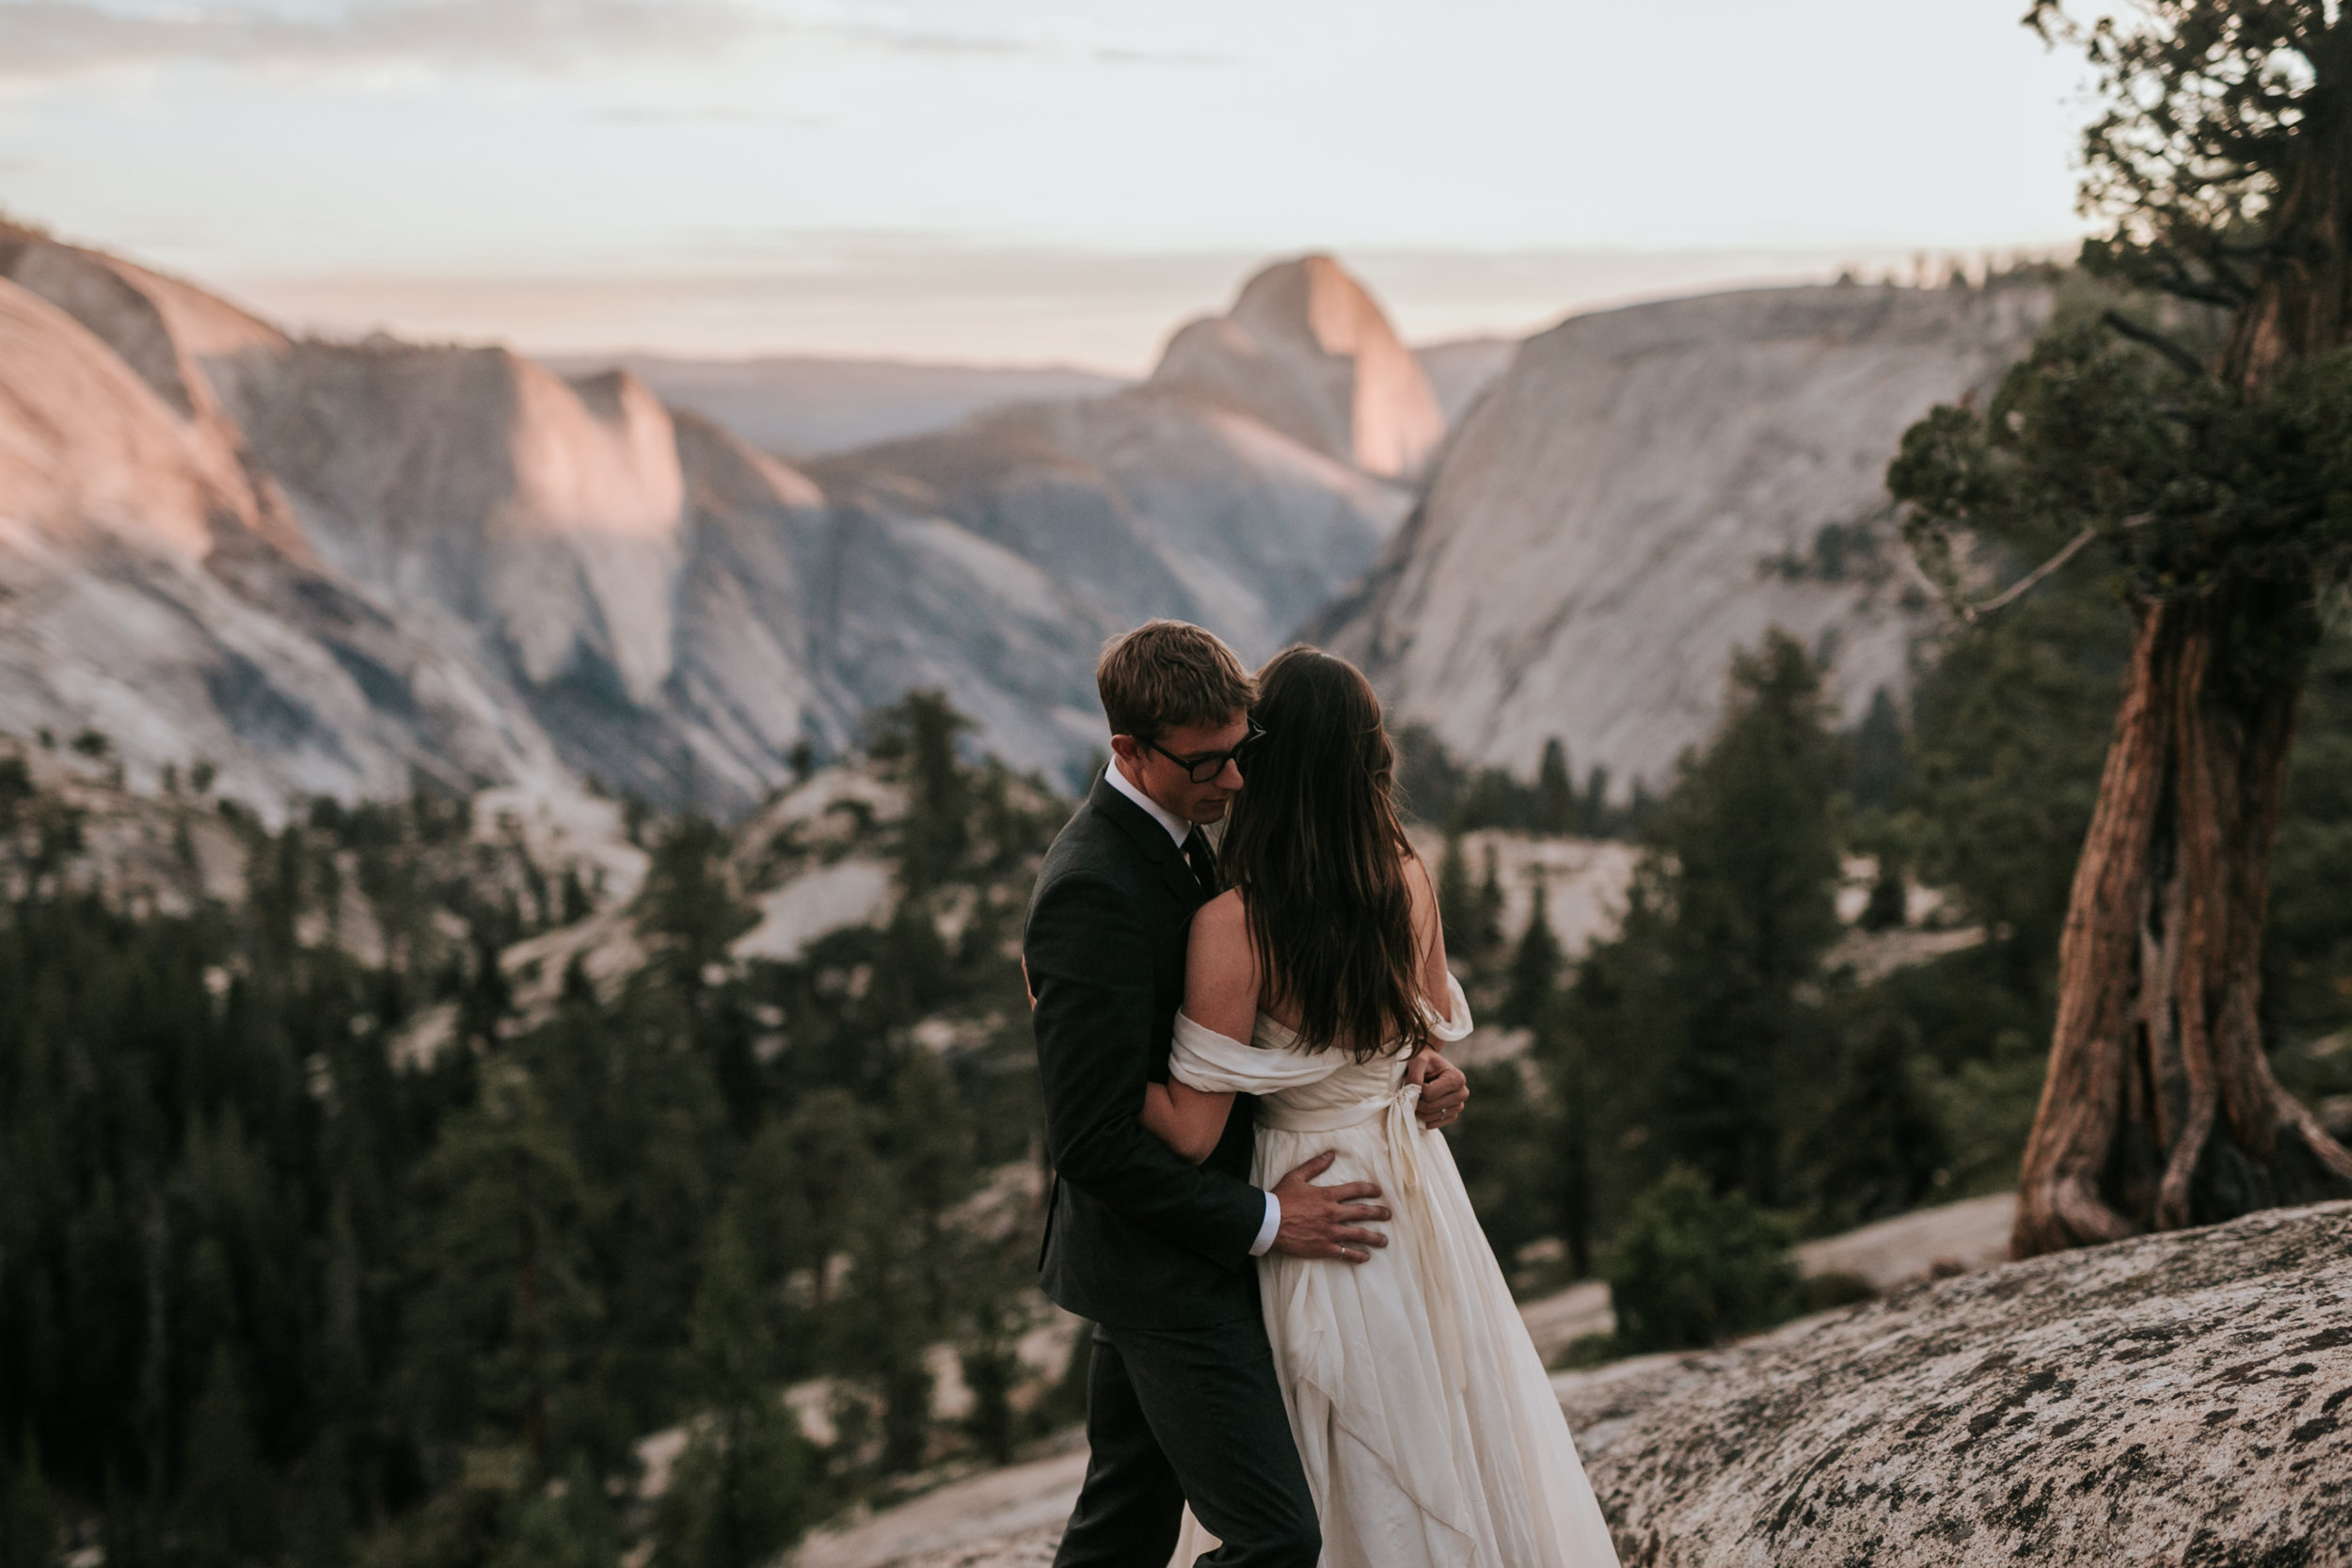 Yosemite Elopement, California Wedding- Grace and Jaden Photography- Shannon and Ian (40).jpg